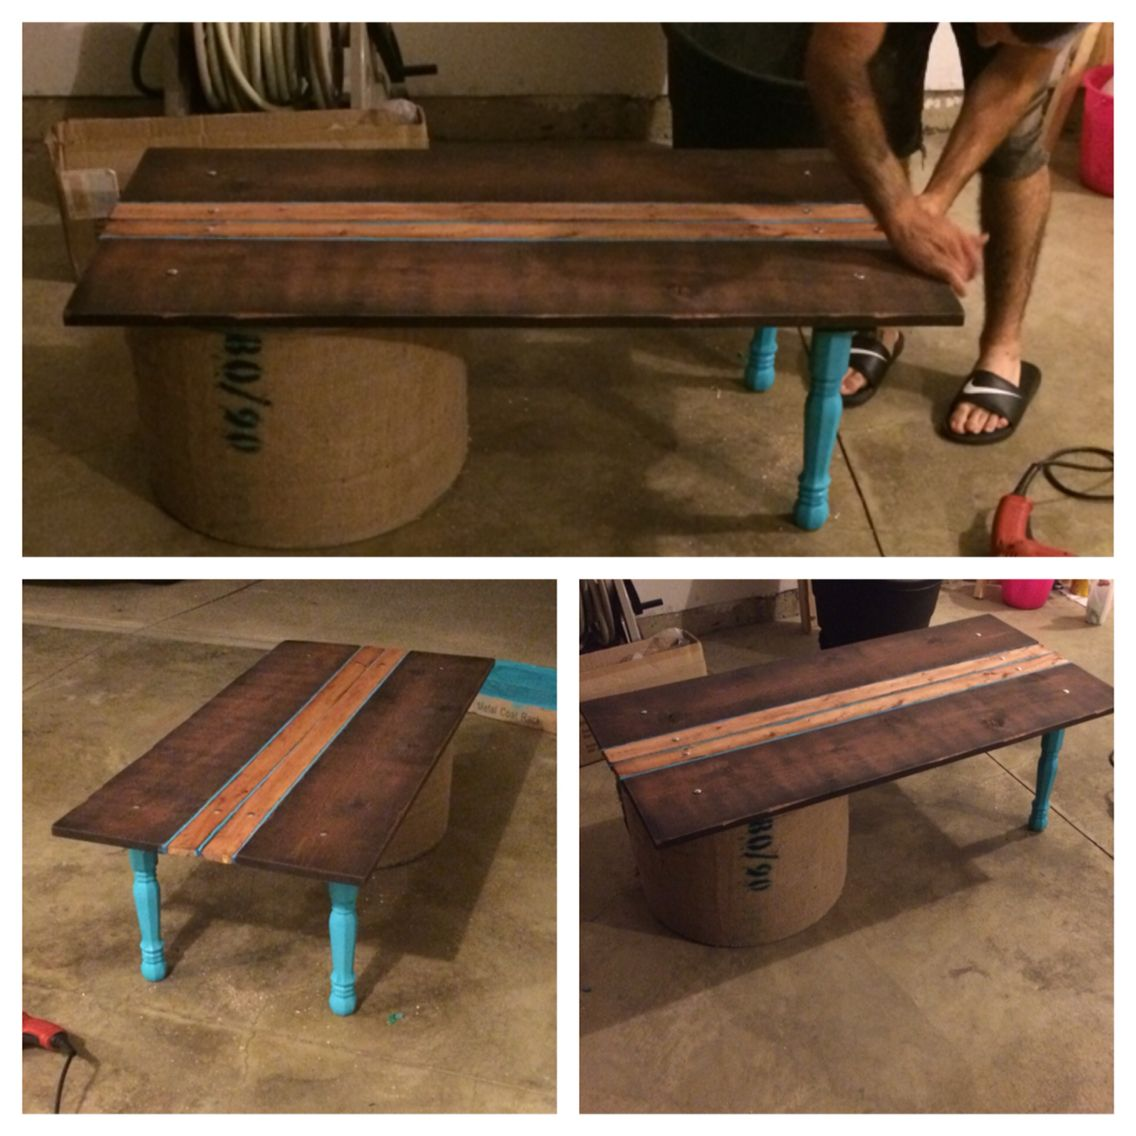 DIY coffee table! Made from 4 pieces of wood, an